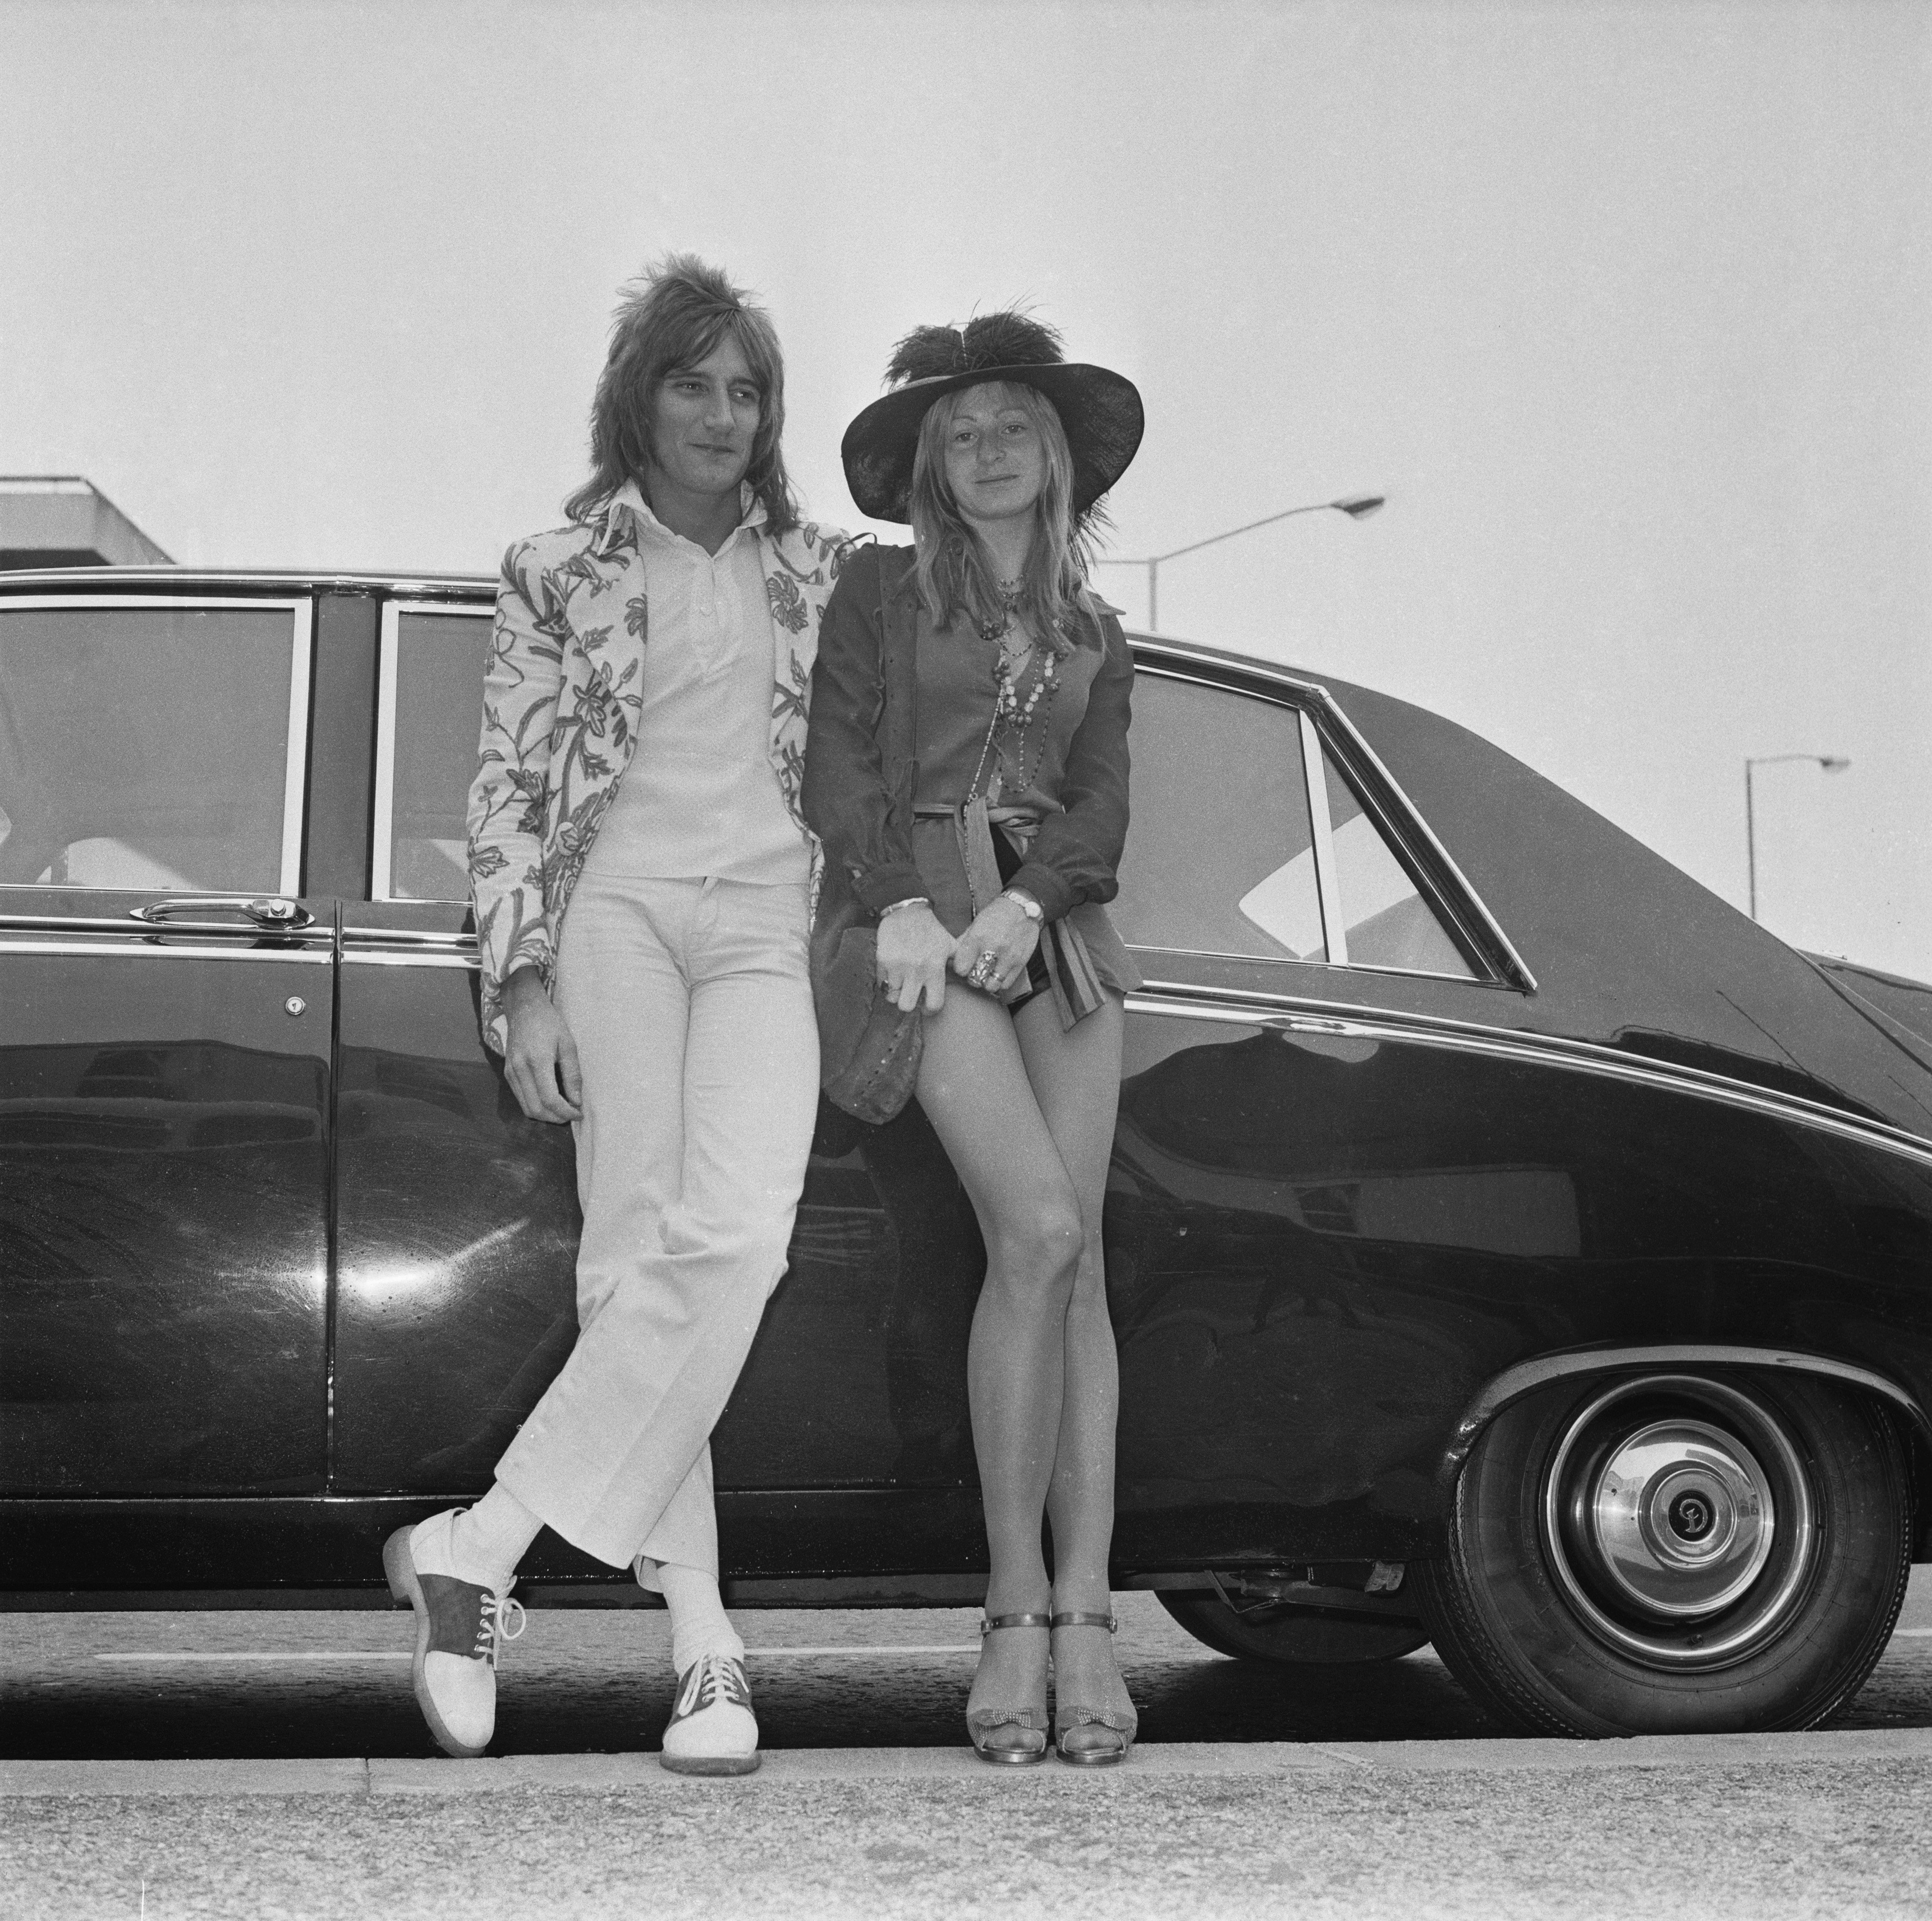 British singer-songwriter Rod Stewart and girlfriend fashion model Dee (Deidre) Harrington at London Airport, London, 20th May 1972. (Photo by Dove/Daily Express/Hulton Archive/Getty Images)